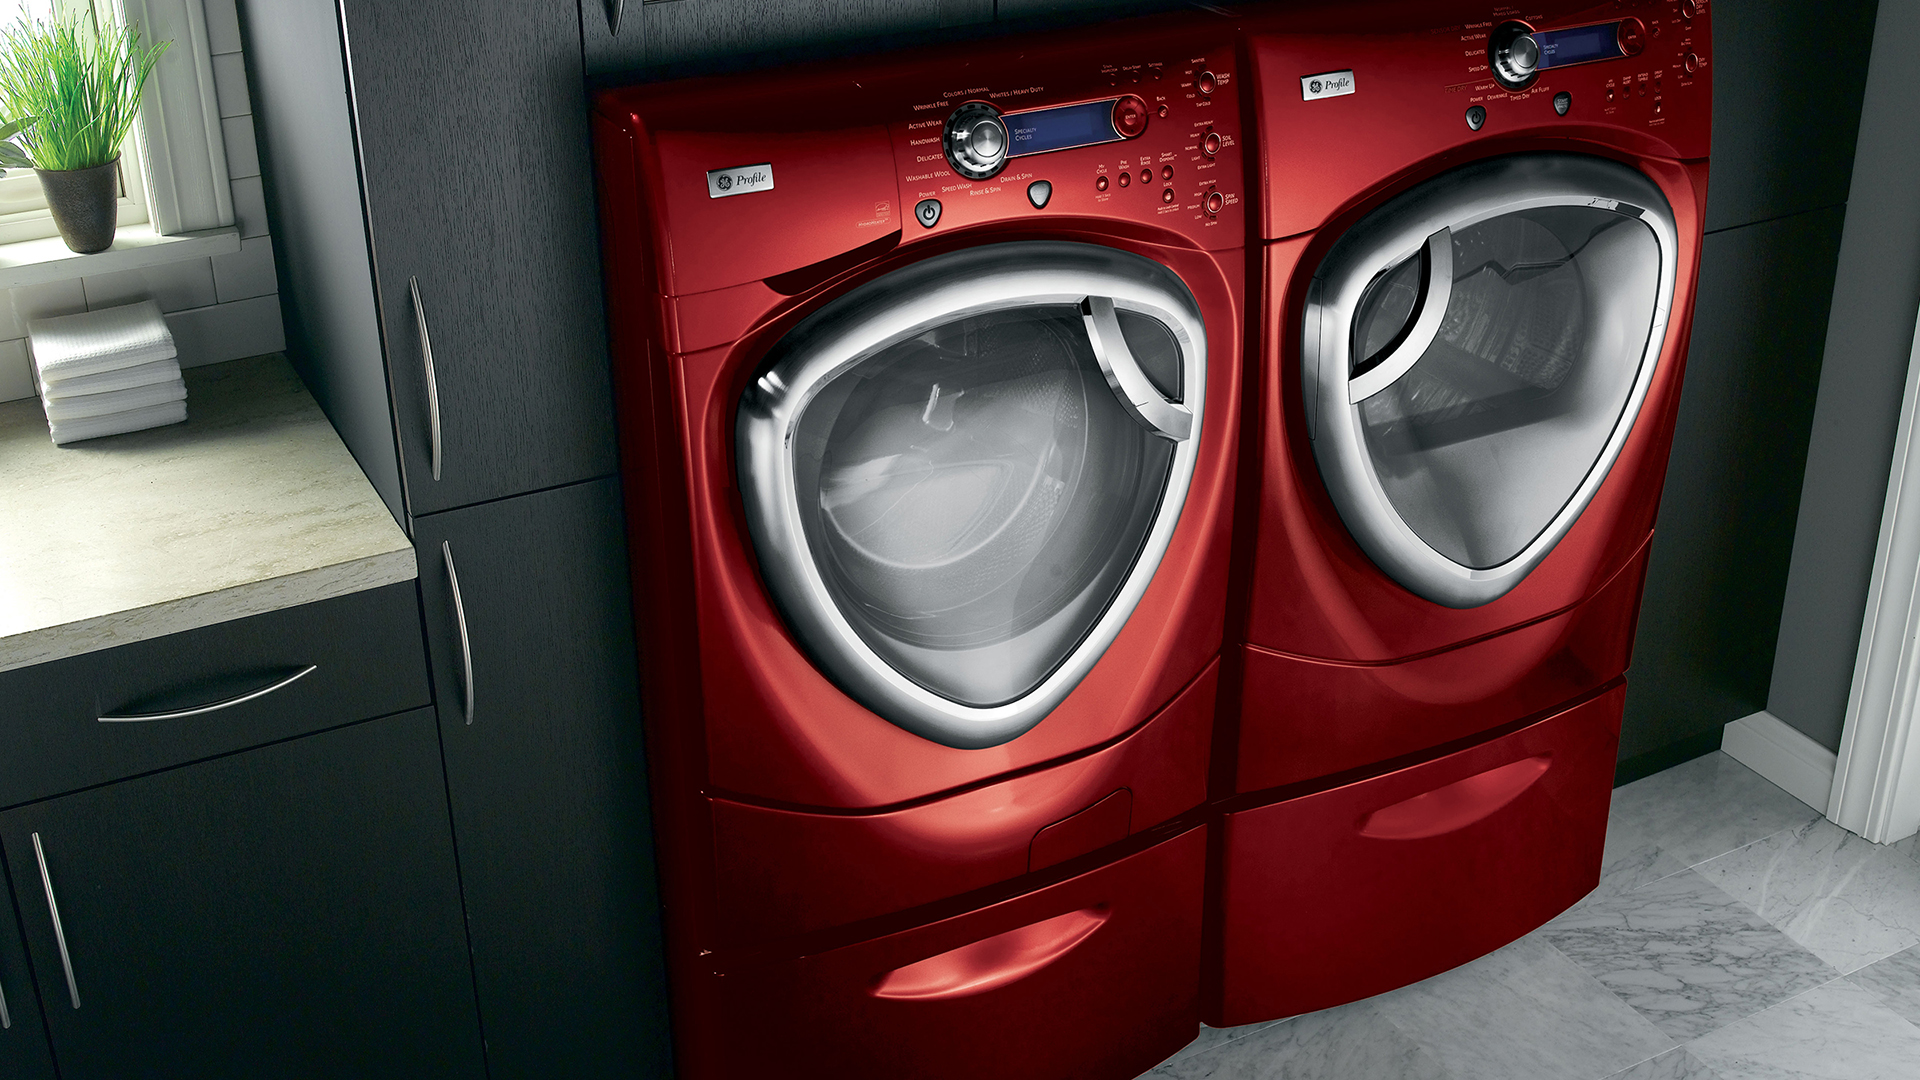 priority_designs_consumer_product_design_washerdryer